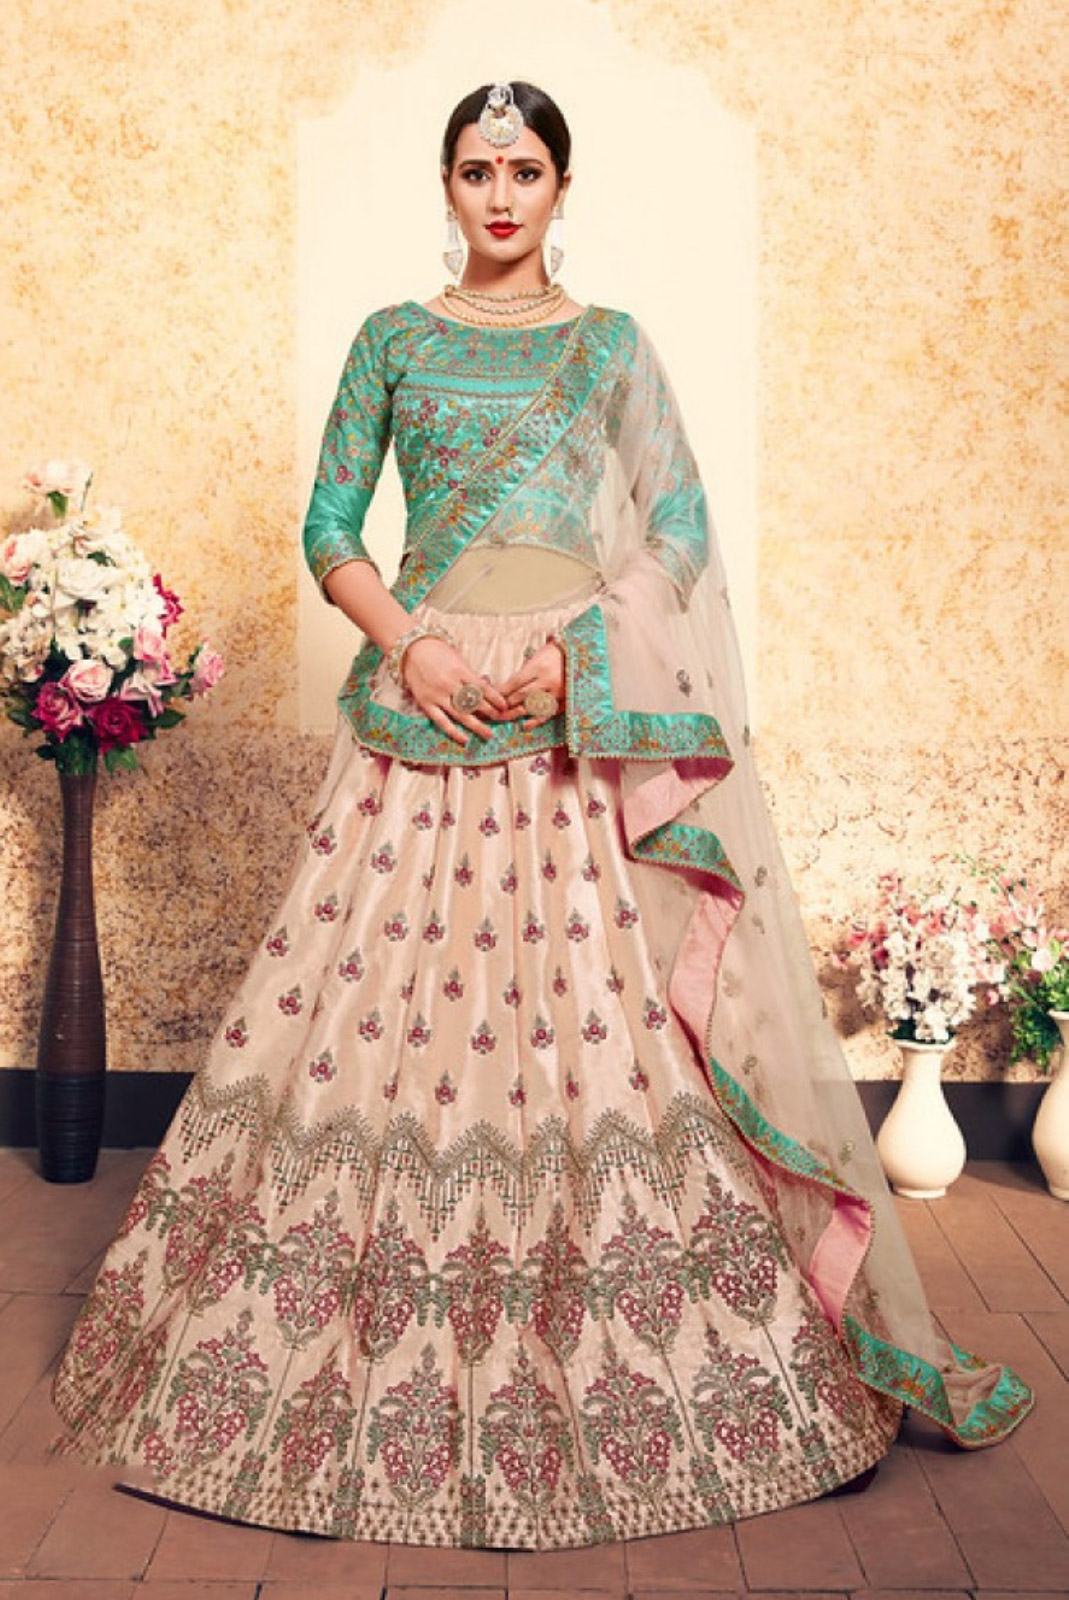 Lehenga-Designs-to-Wear-to-a-Traditional-Event-Circular-Lehenga